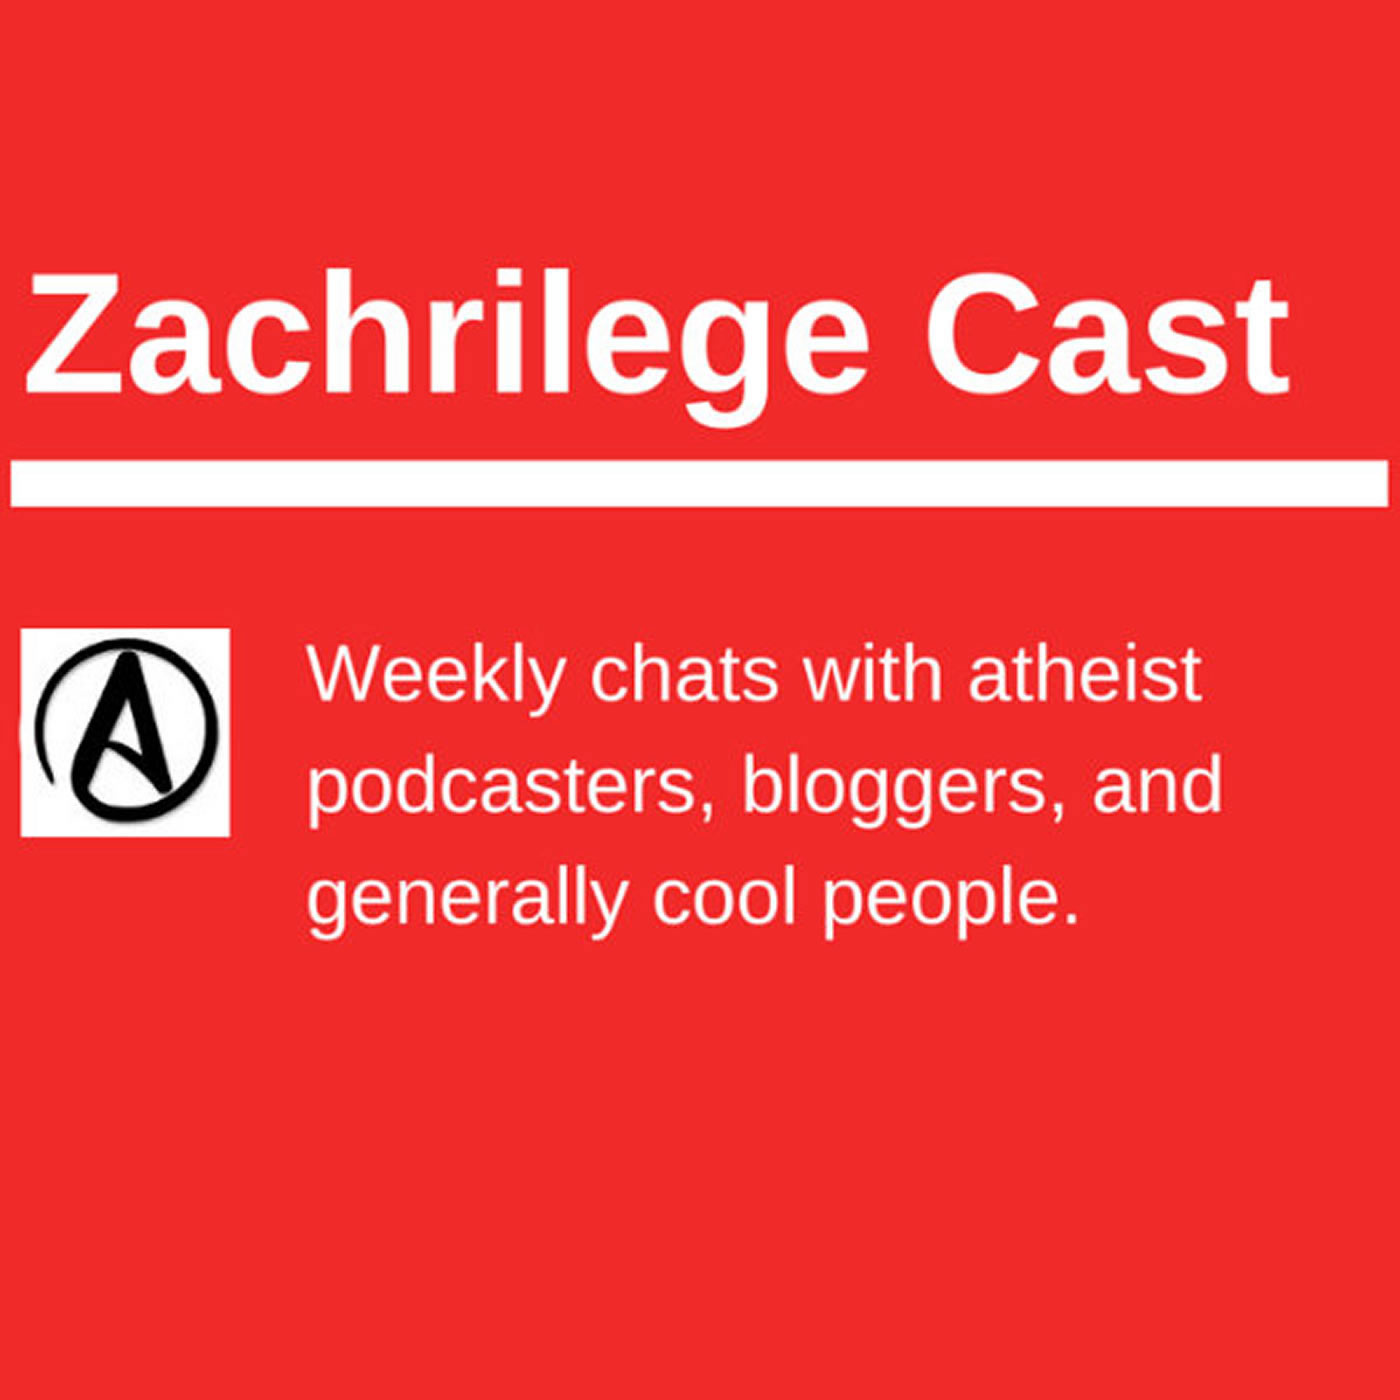 Zachrilege Cast #191 — Not Another Game of Thrones Recap